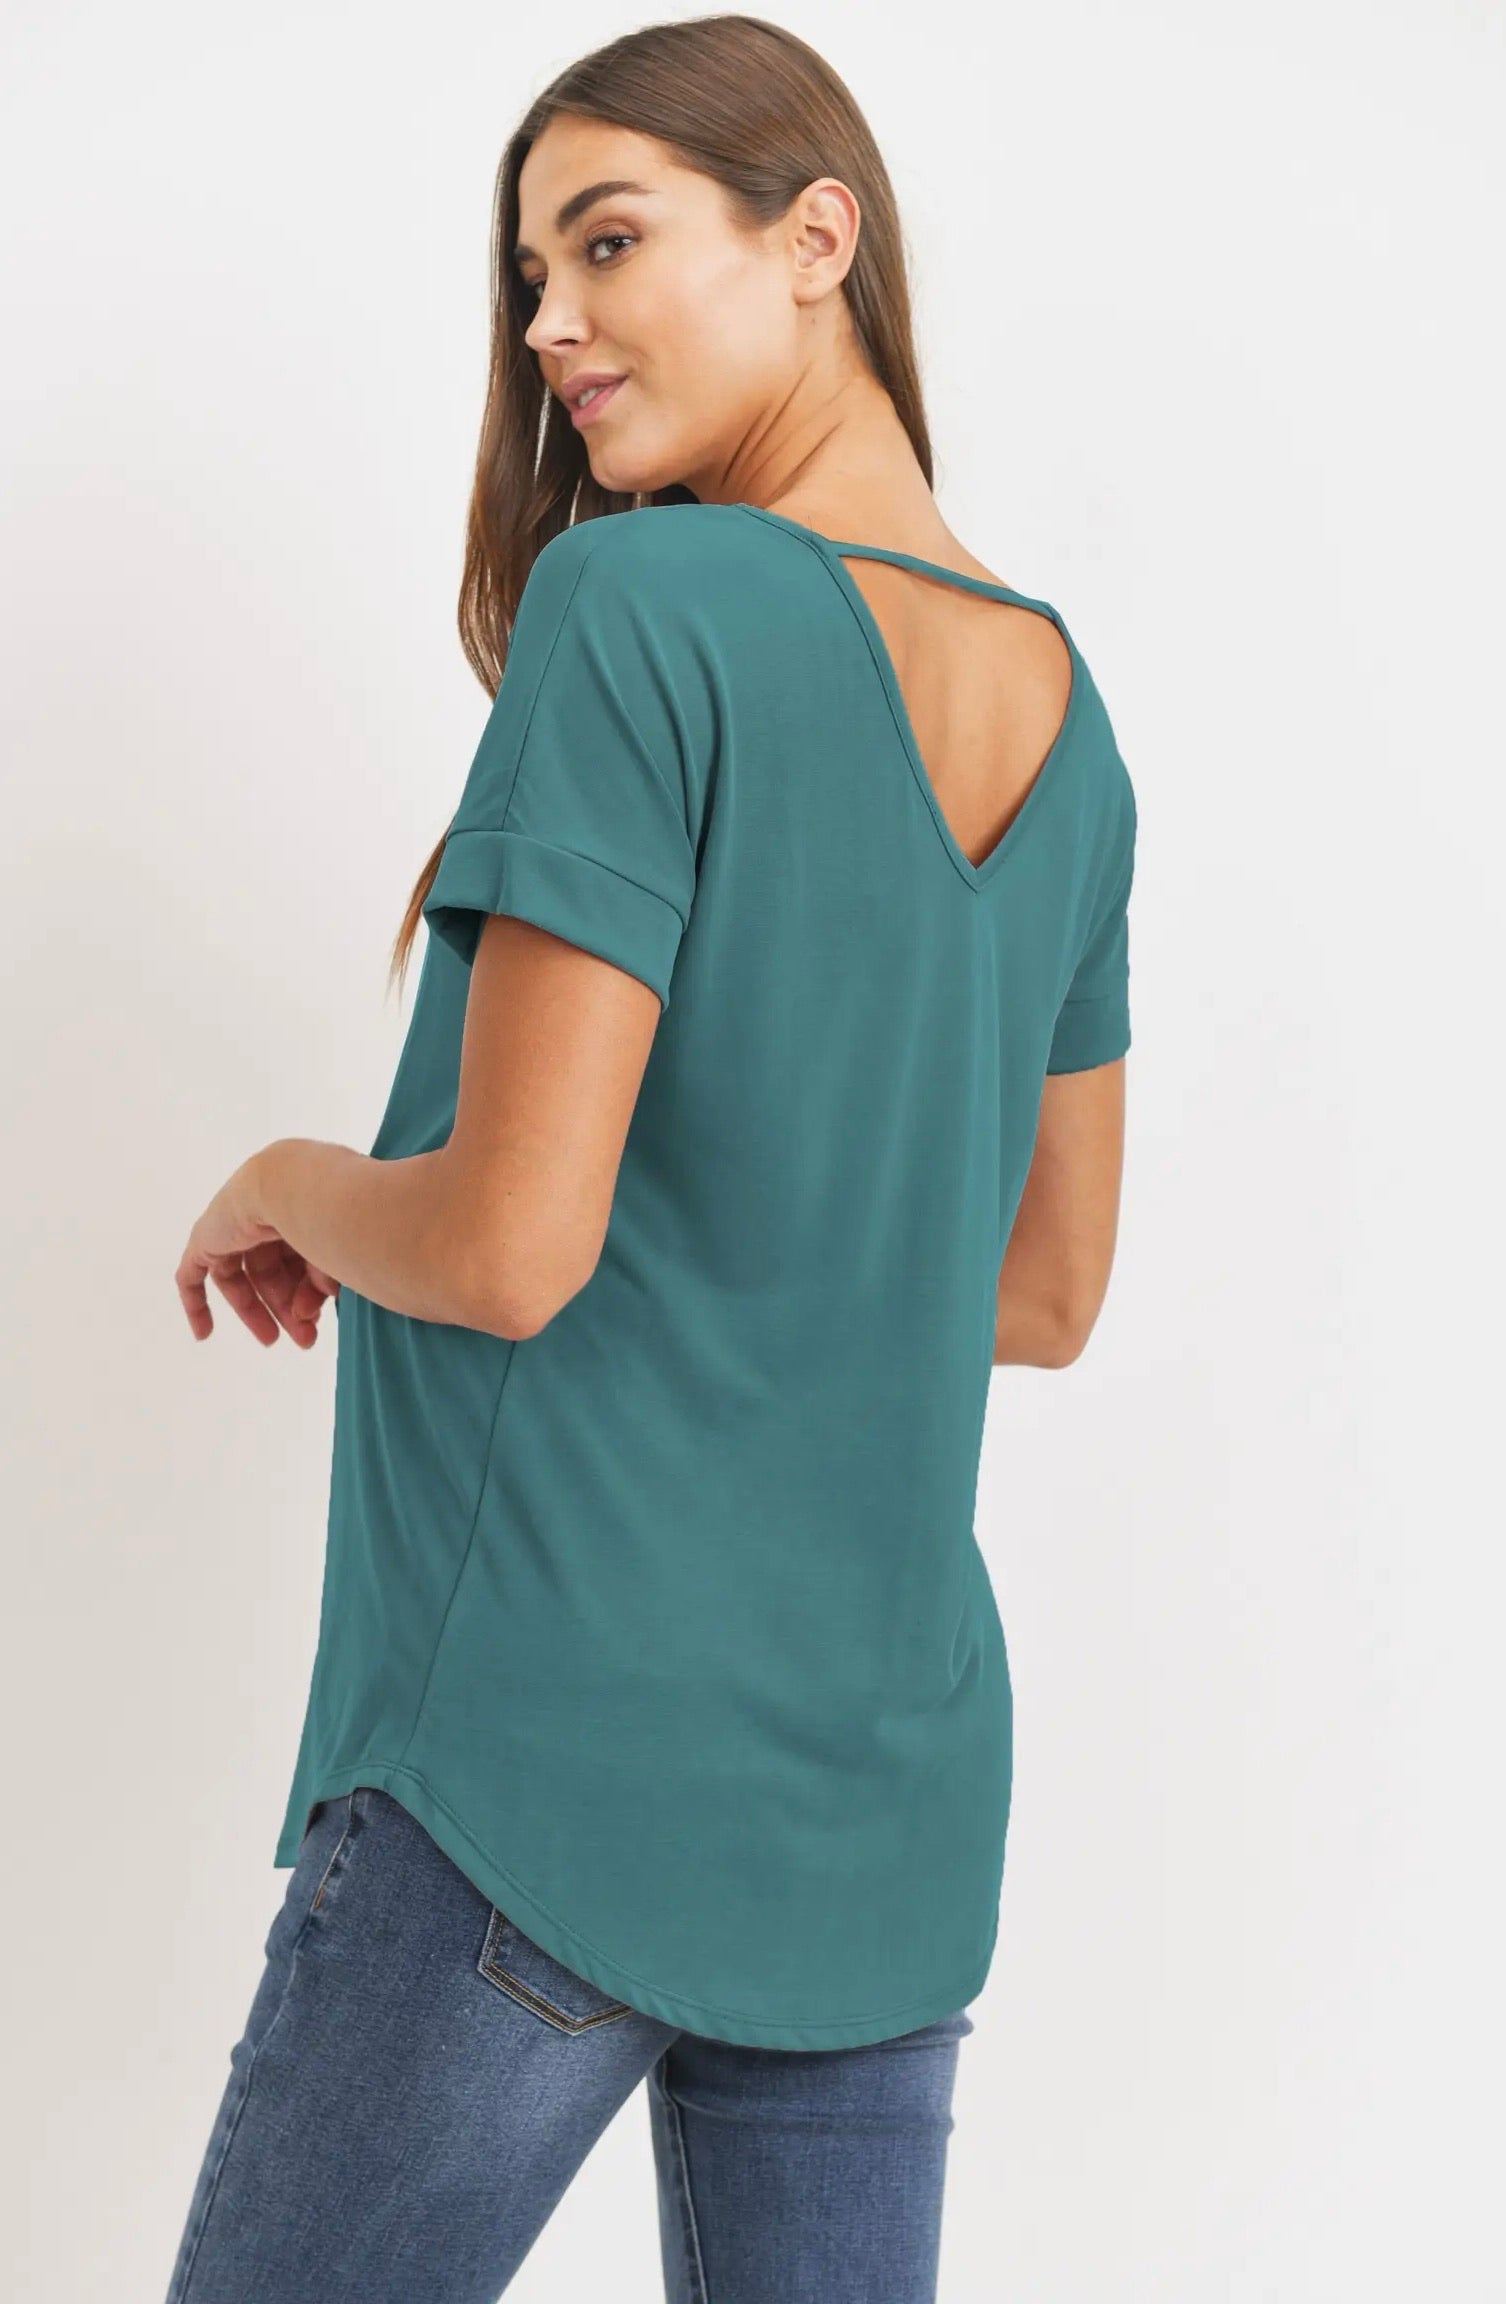 Drop Shoulder Maternity Top - Teal